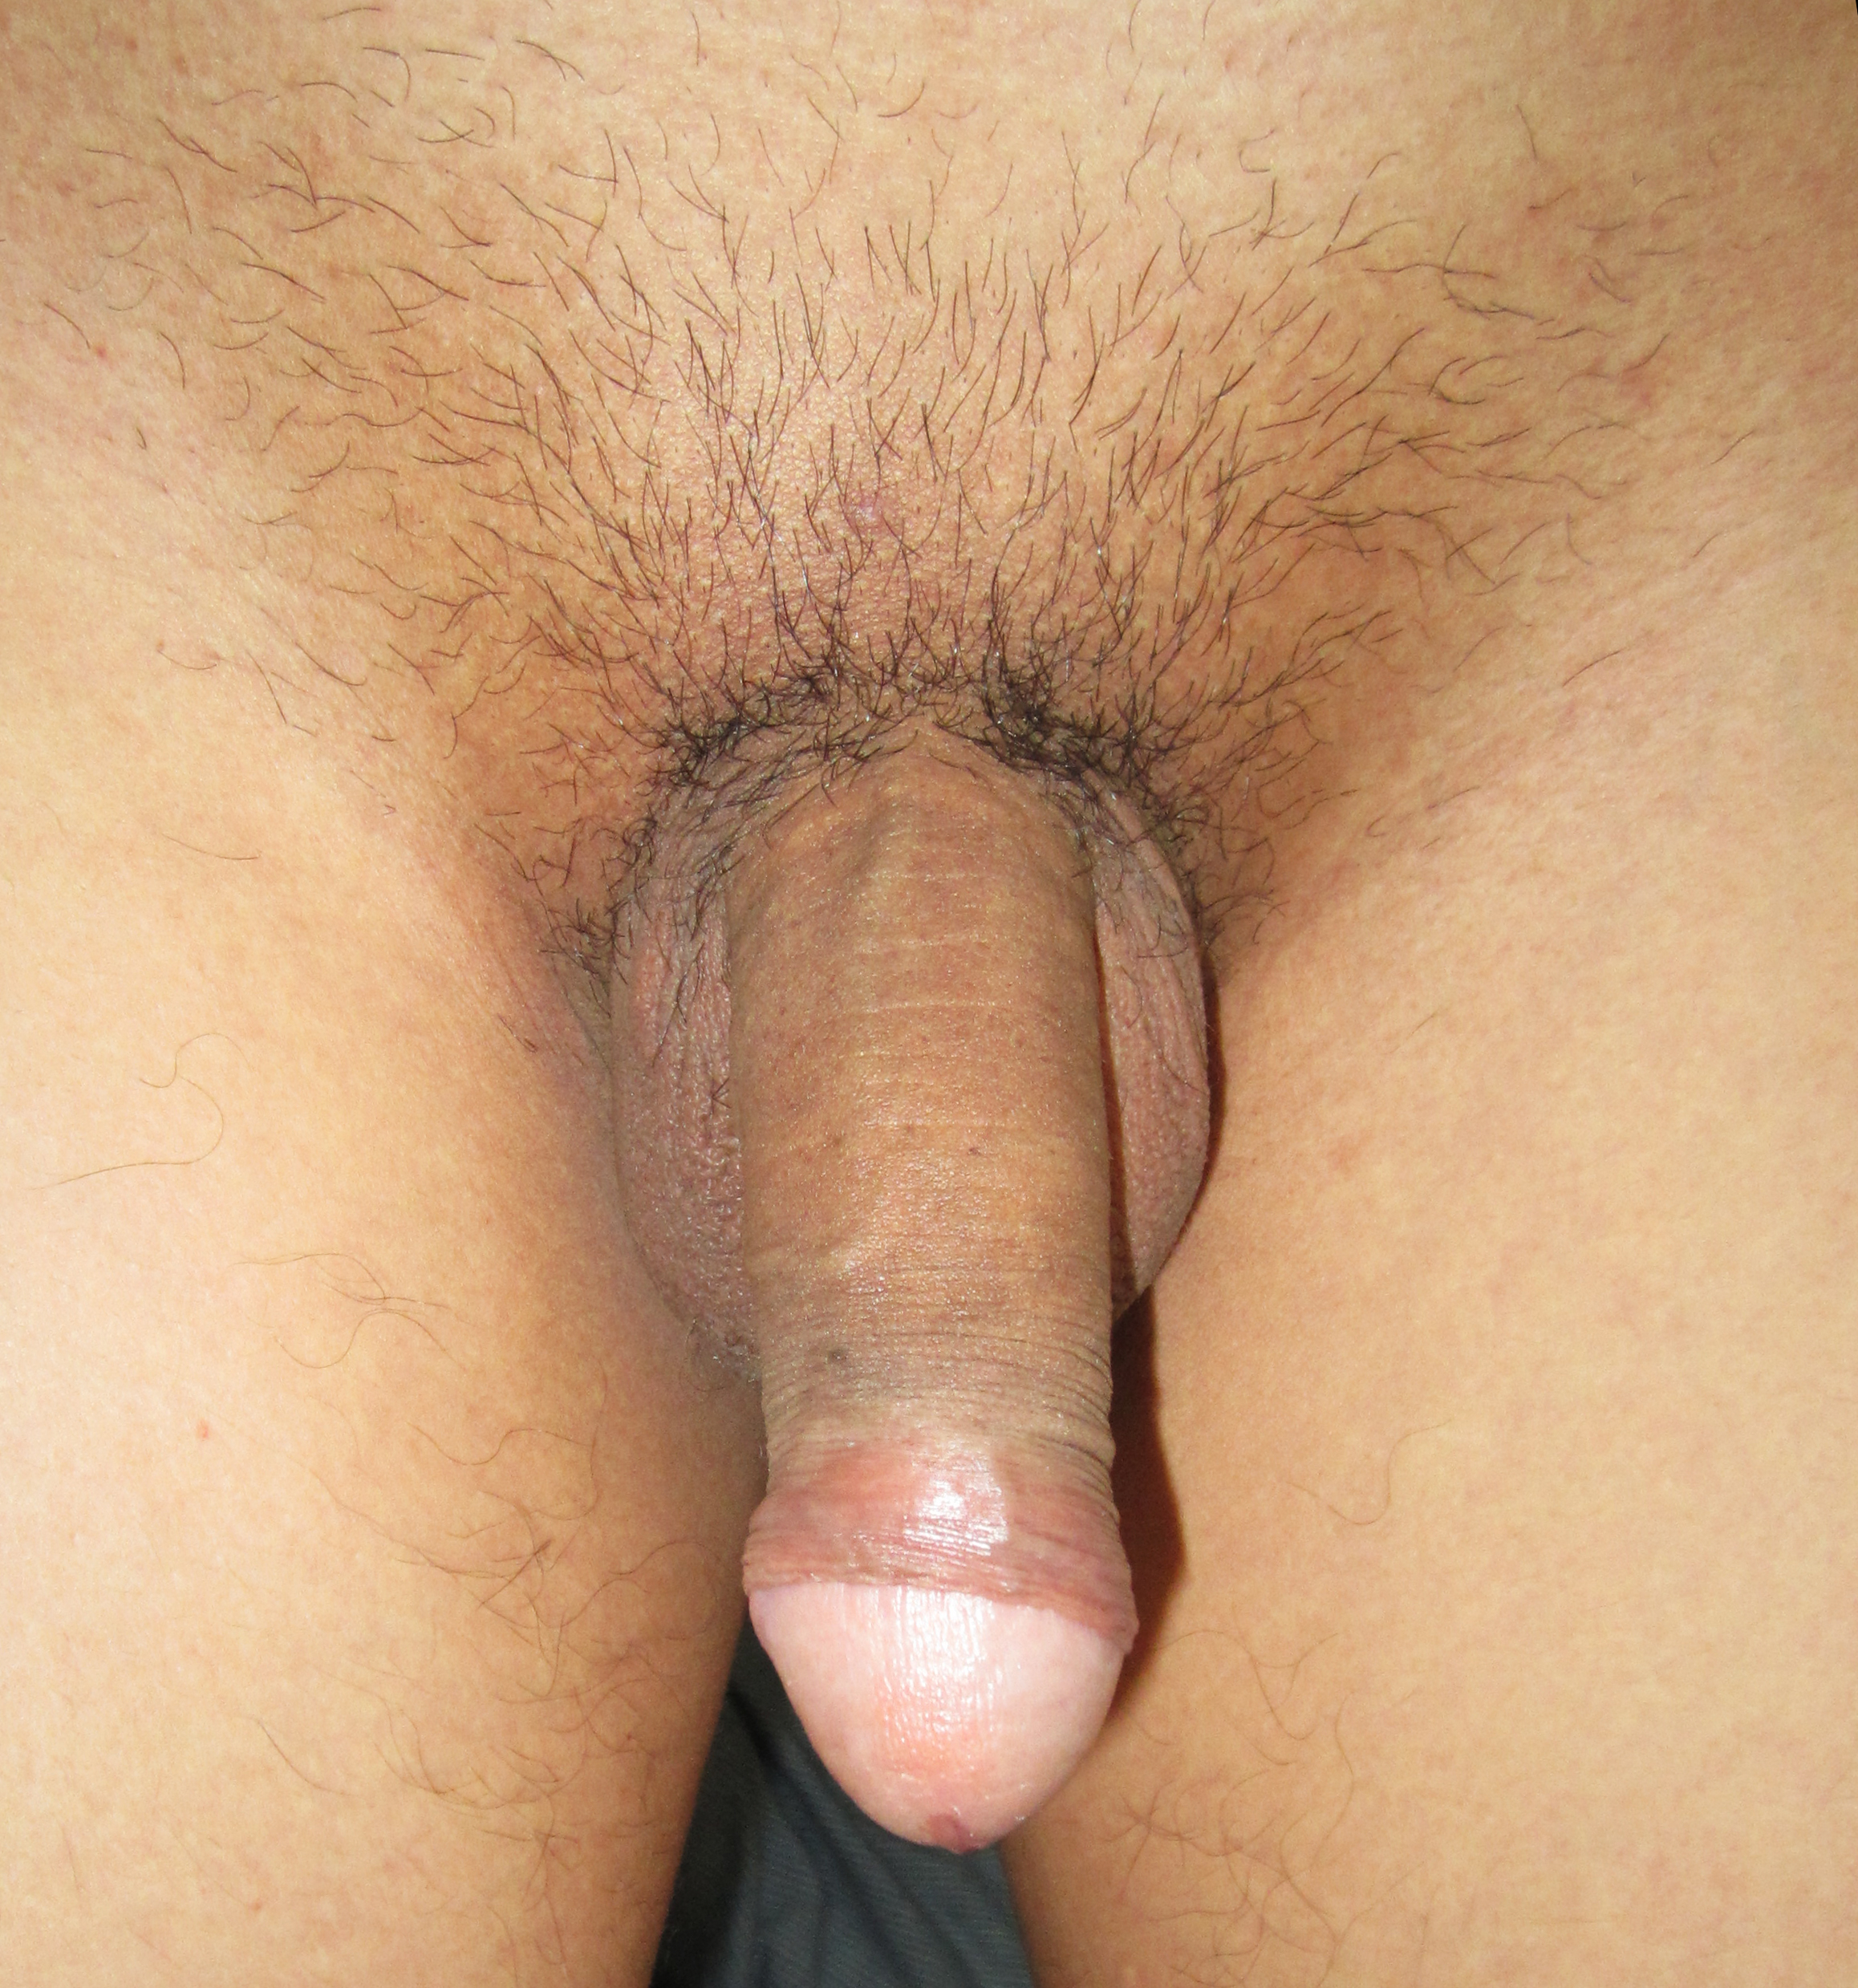 Hairy penis or shaved penis